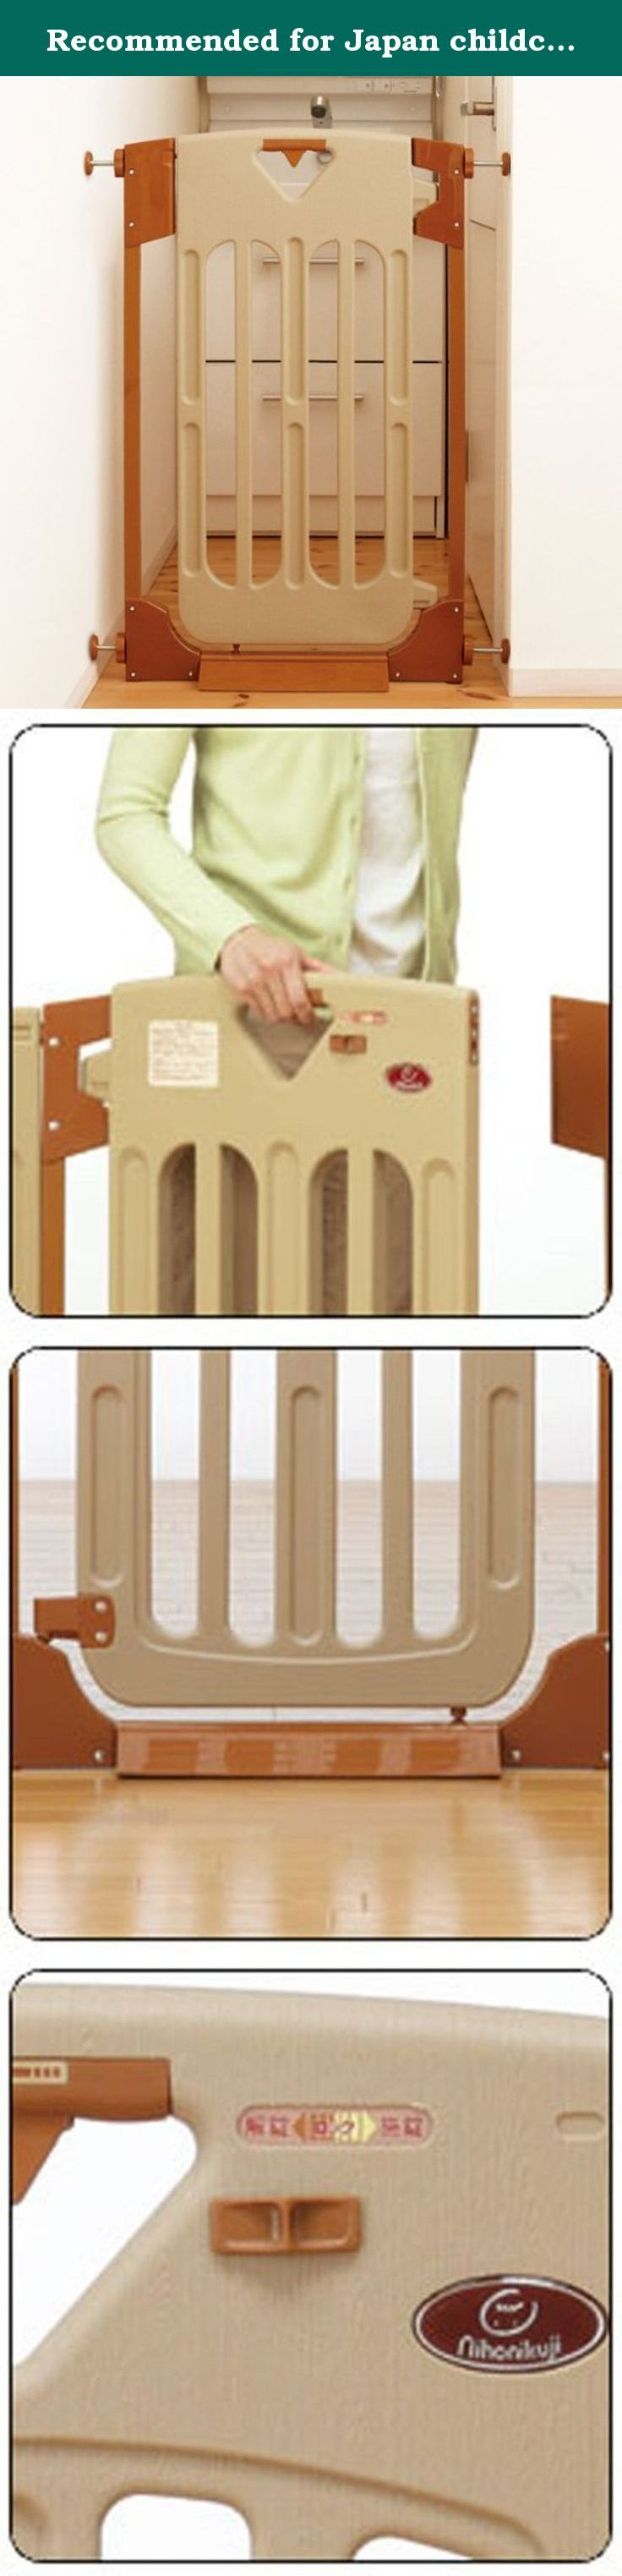 Recommended for Japan childcare smart gate slim mounting width 60 ~ 68cm ~ depth 3 ~ height 91cm NI-2702 6 months to narrow places such as the 24-month target back door. Slim gate of the Brace system Mounting width 60 ~ 68cm ~ depth 3 ~ height 91cm Age: 6 months to two years old Double lock [The set includes accessory] body-step cover mounting bolts and adjusting knob > see more.